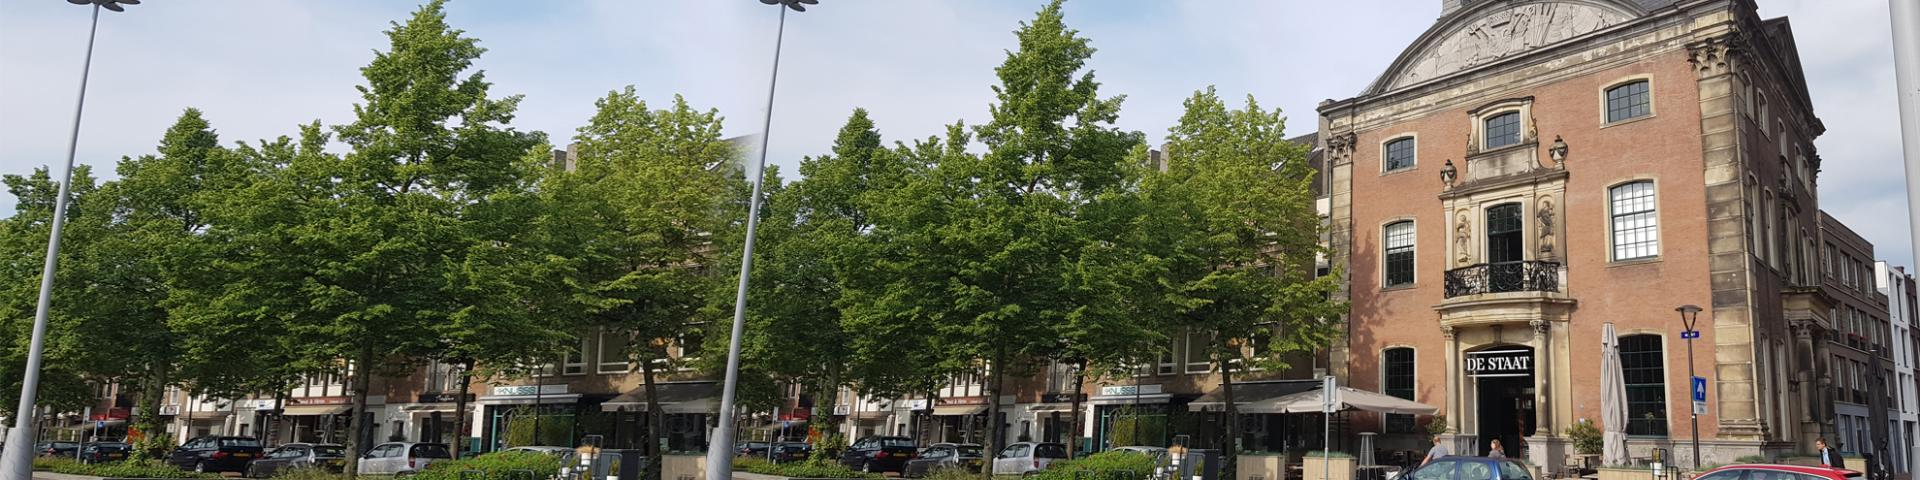 Stadswaag